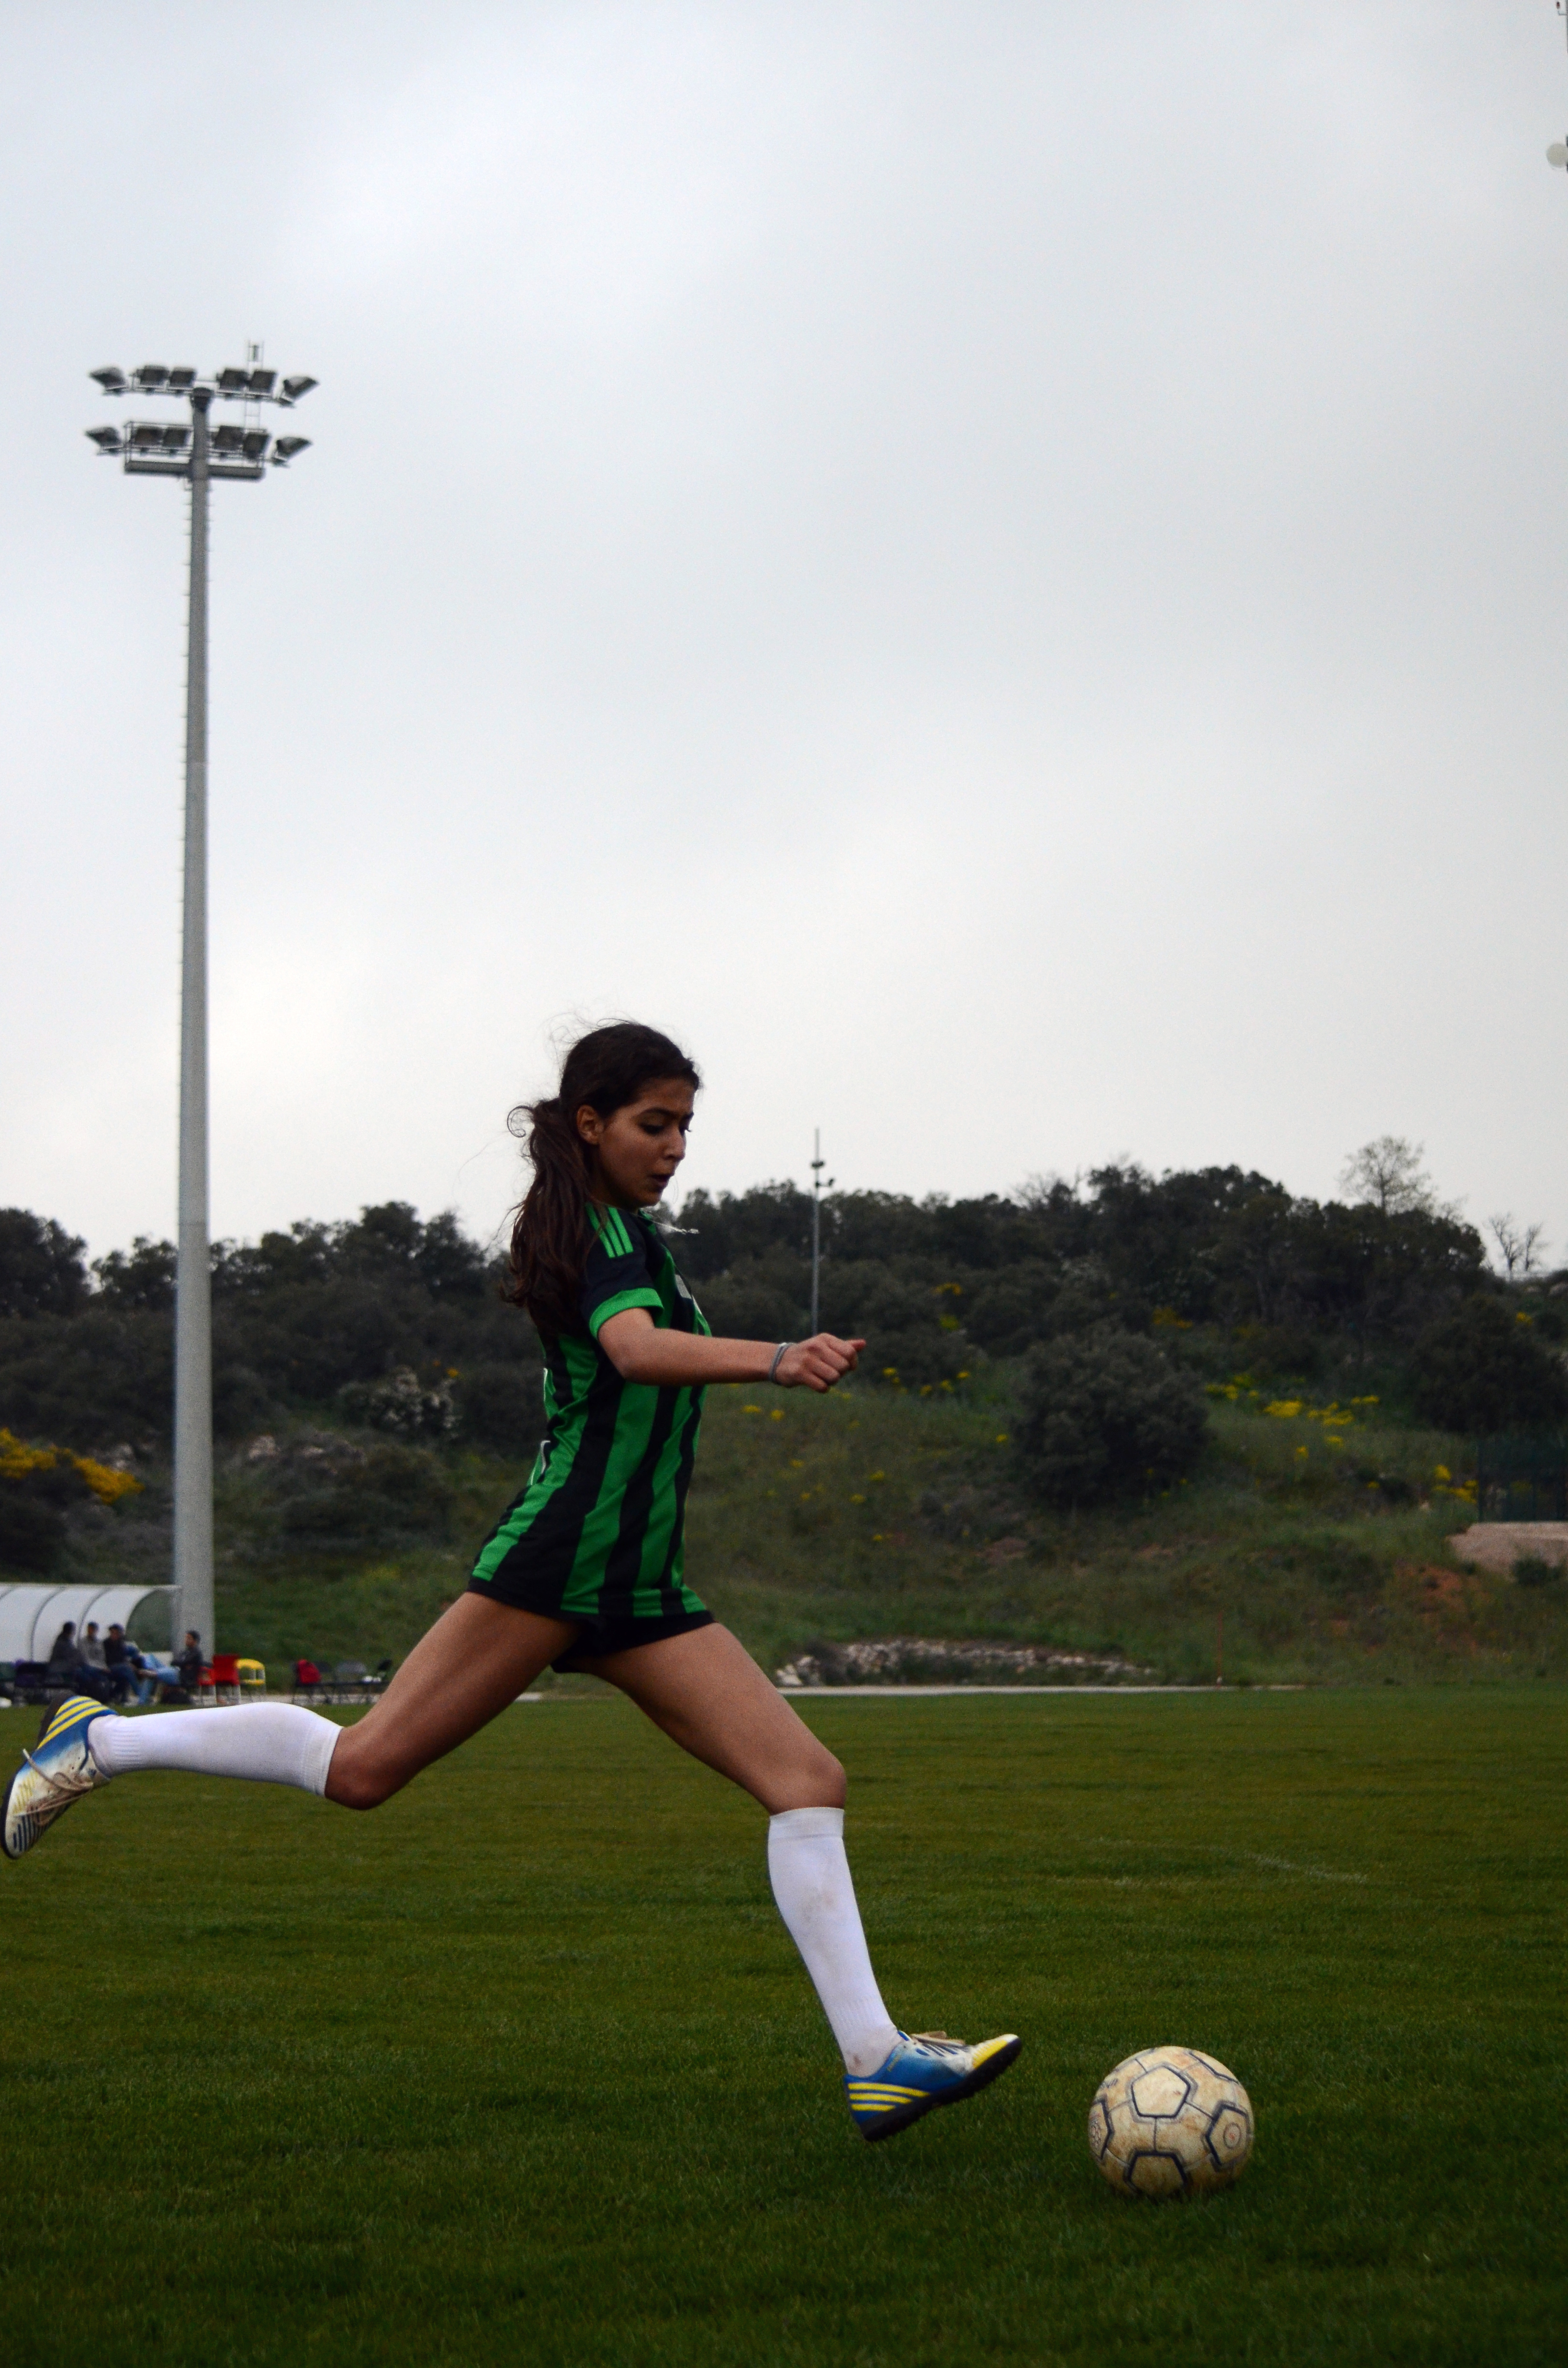 A young woman in a black and green jersey making a dynamic play at a soccer game.